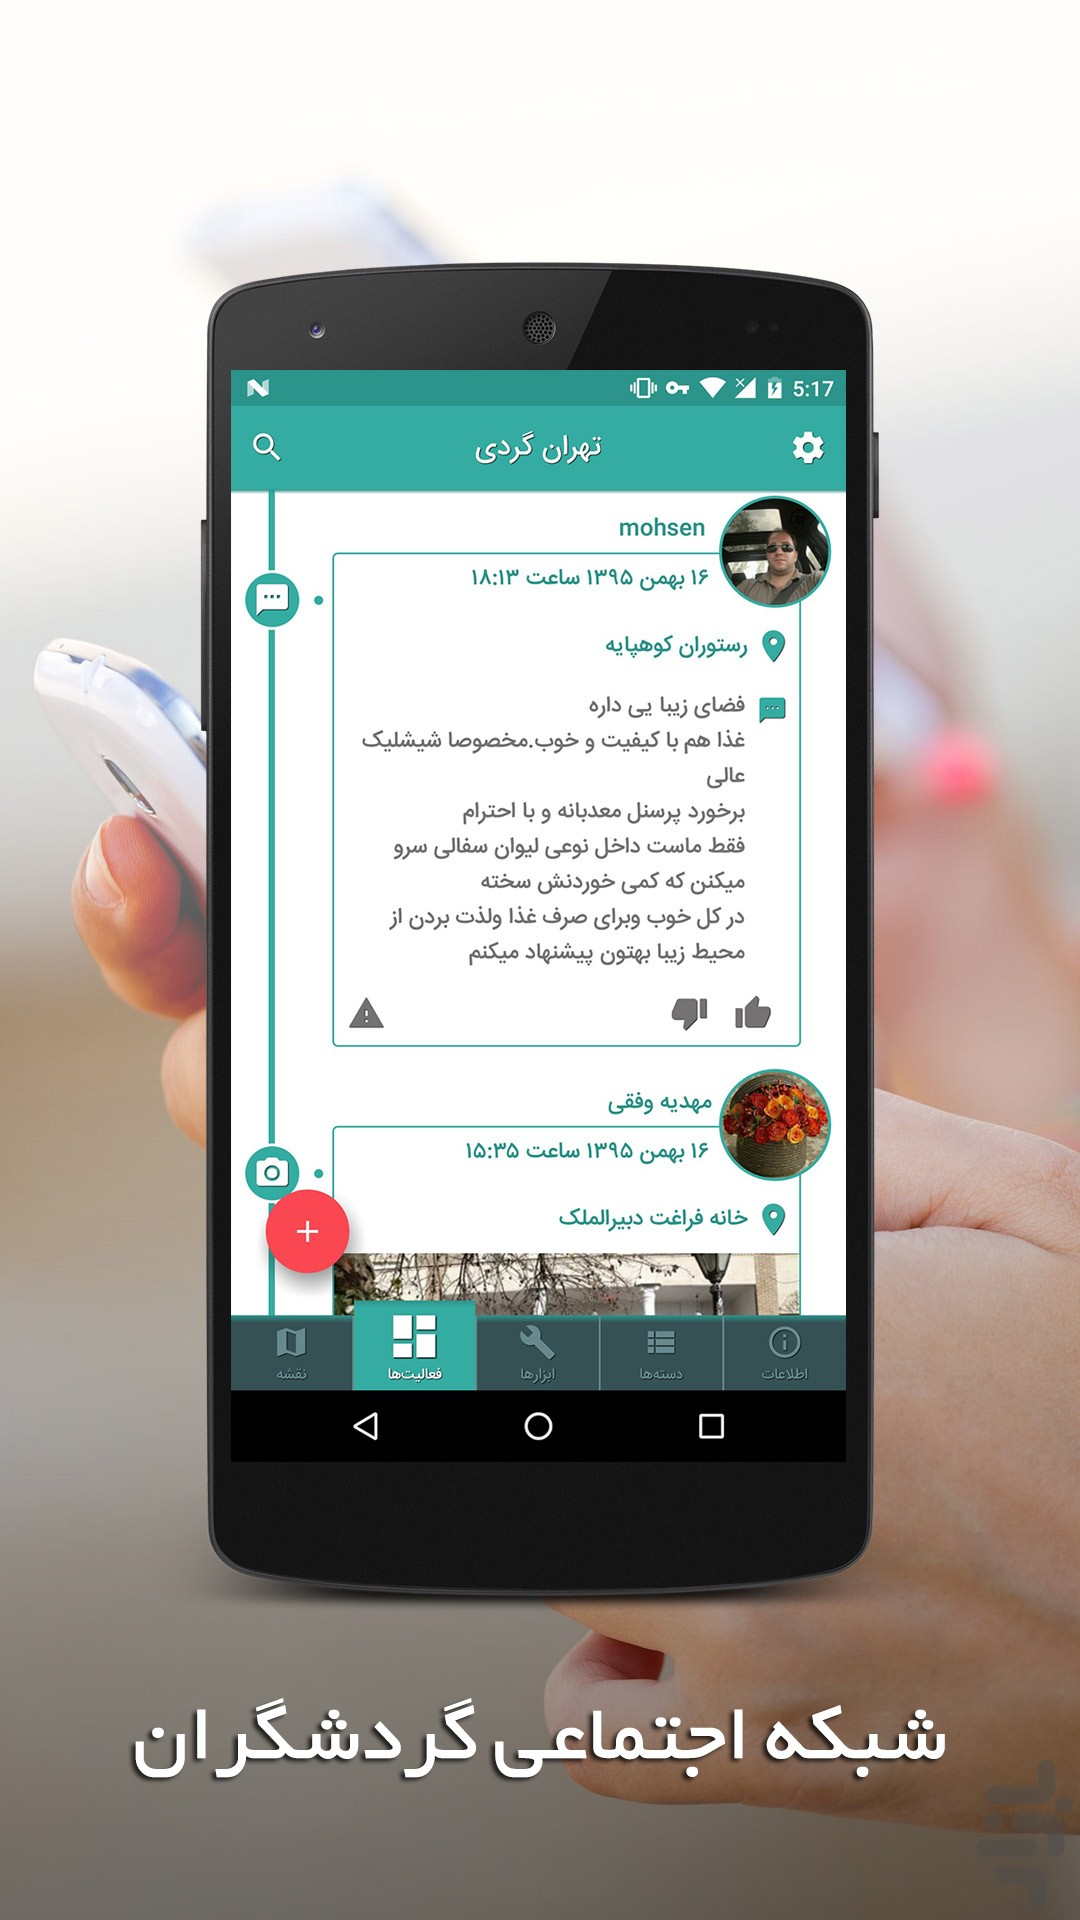 همدان گردی screenshot